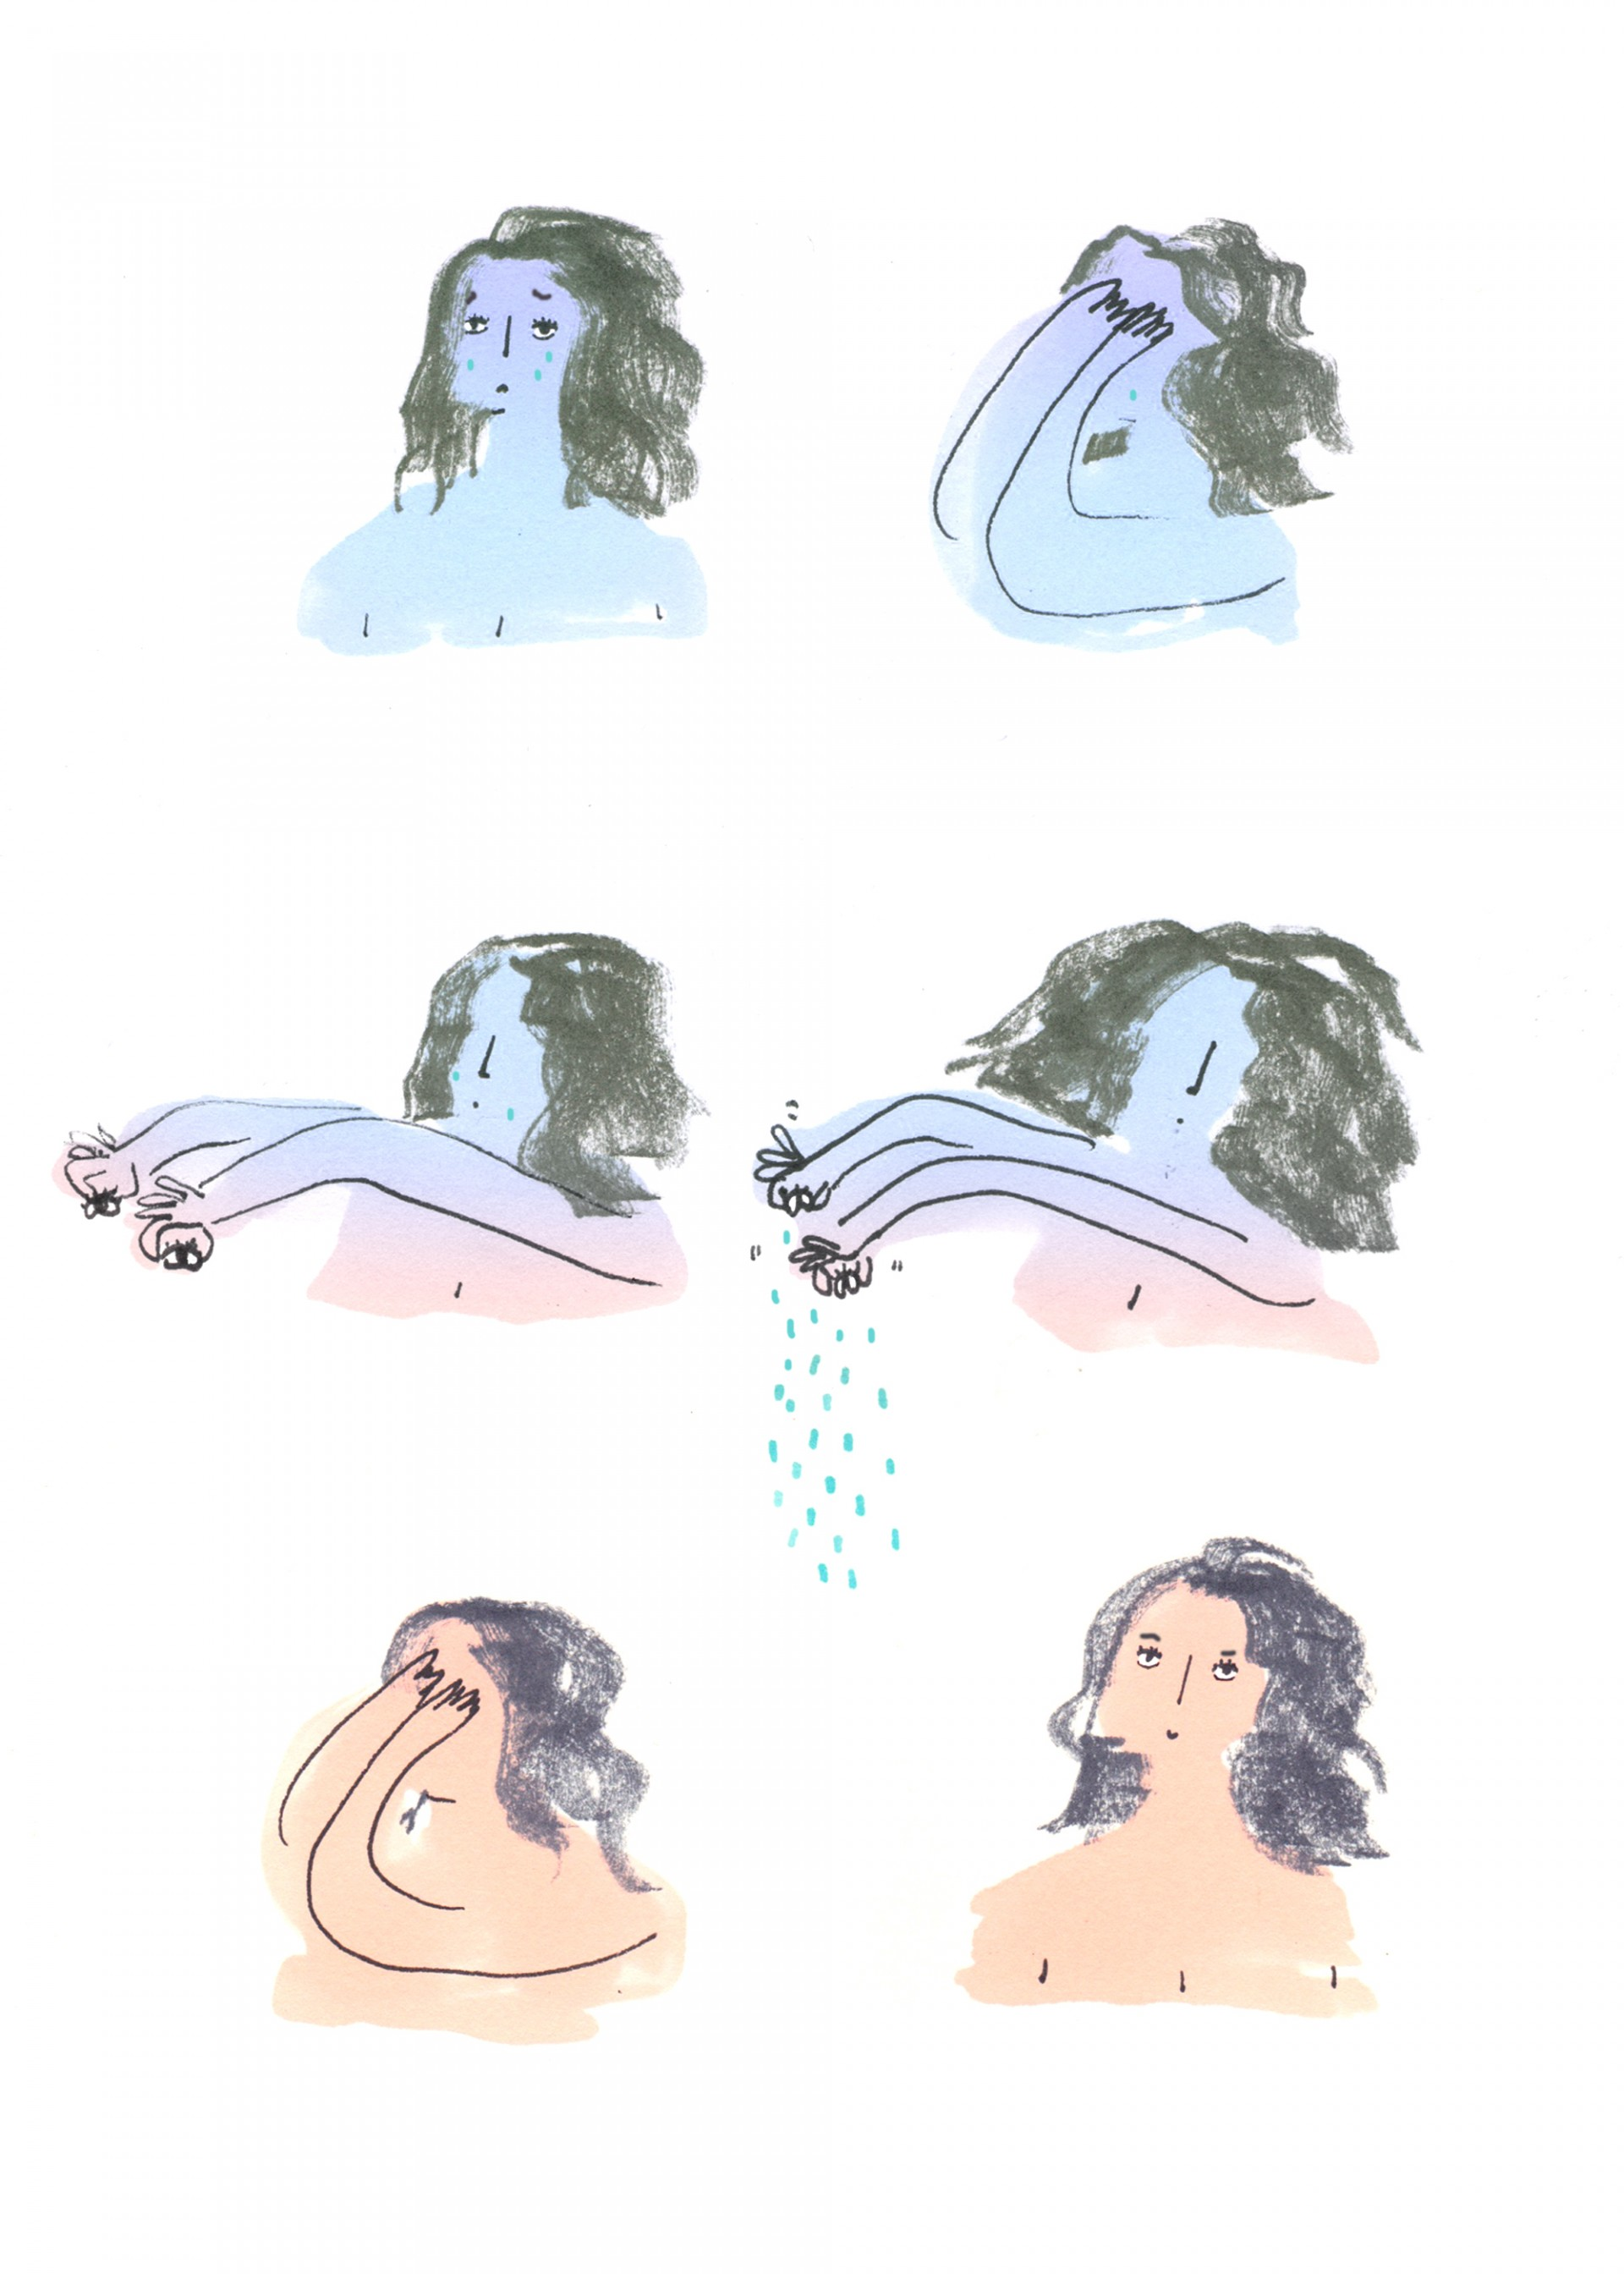 Illustration that depicts a girl who is sad, then plucks out her eyes, squeeze out the tears then puts her eyes back in and she appears happy. The color of her skin shifts from blue to tan.